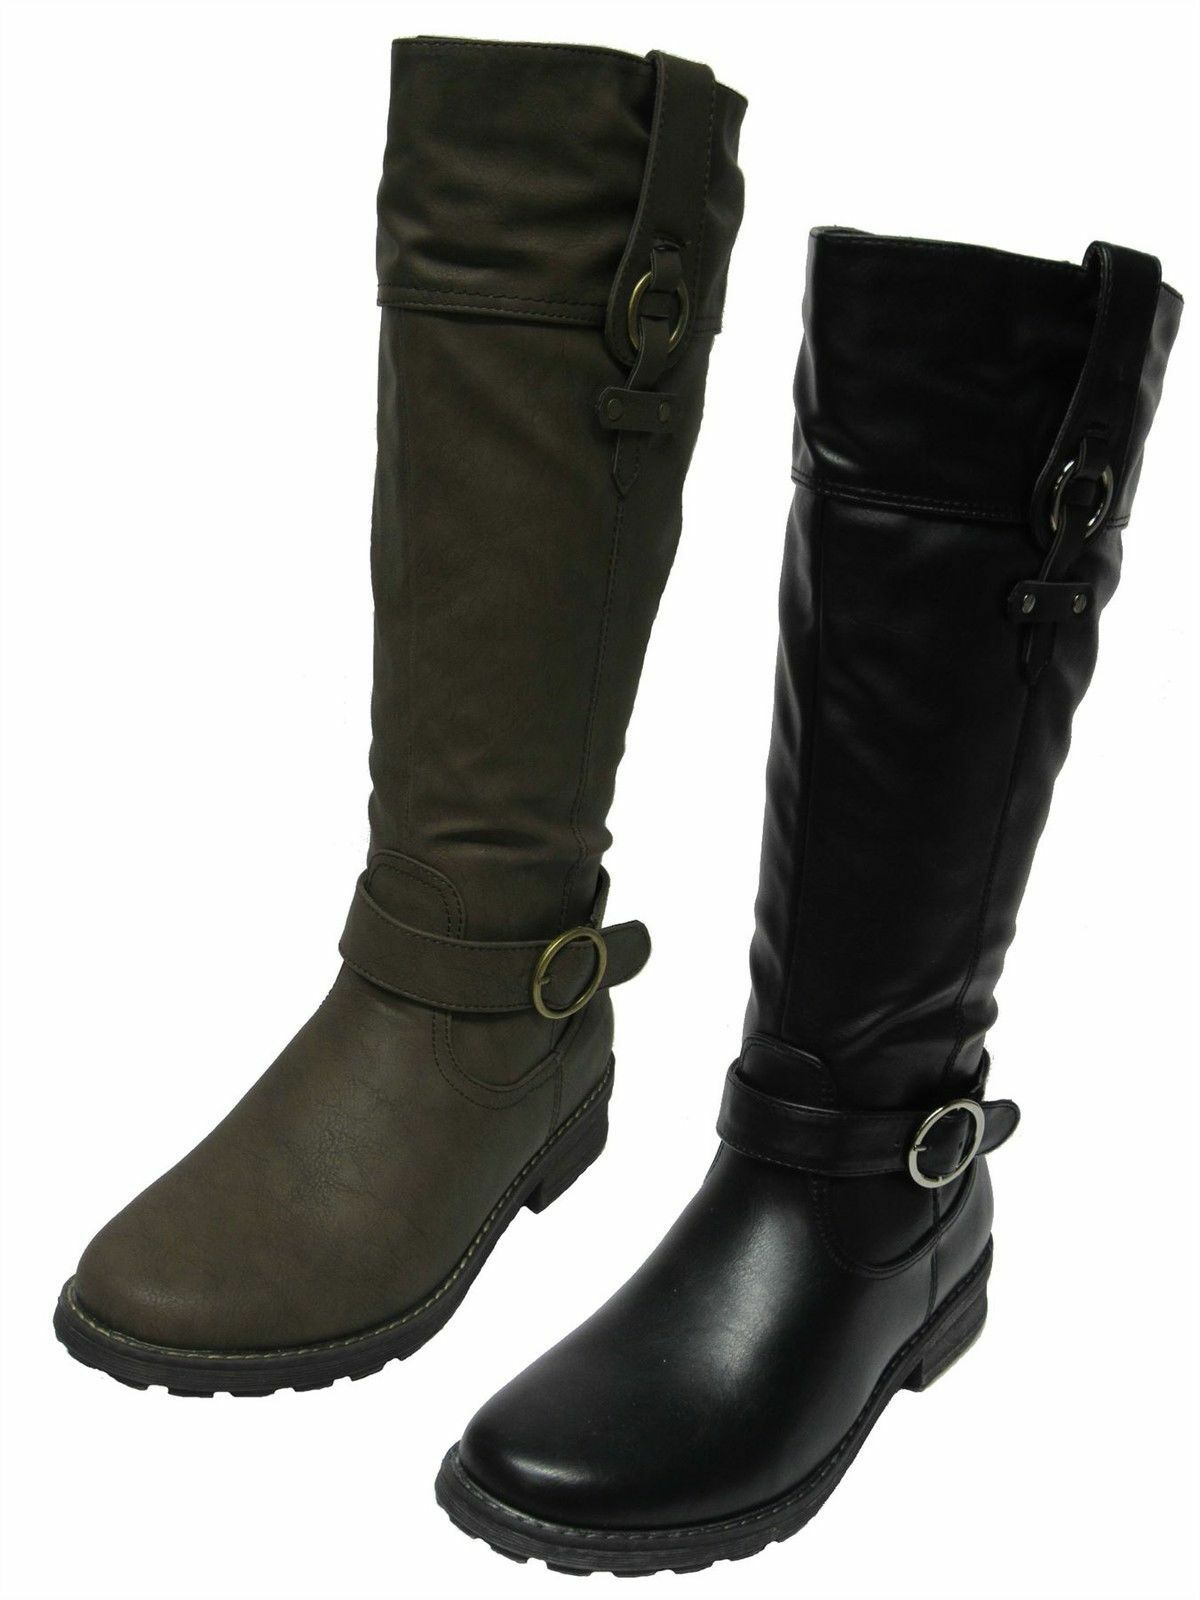 PADDERS CHICAGO BLACK OR TAUPE KNEE HIGH BOOTS